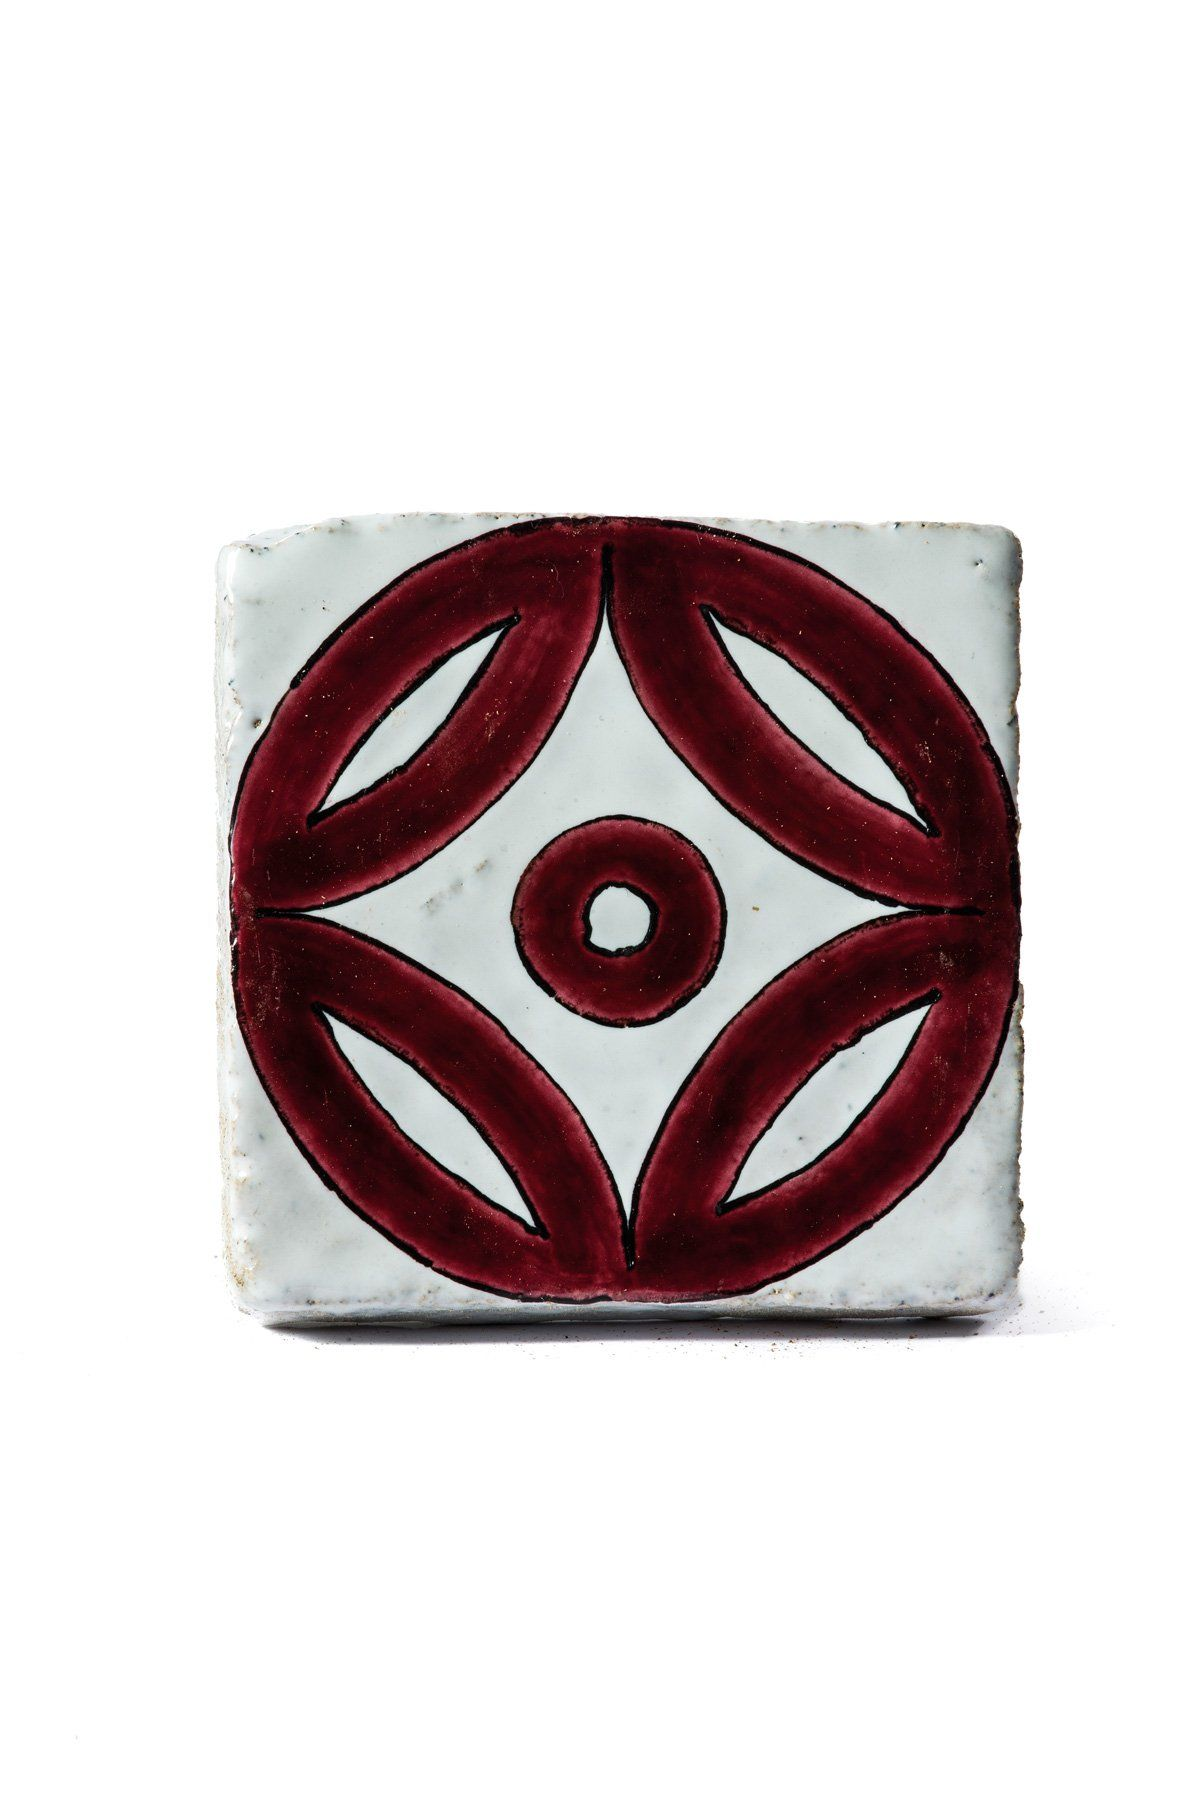 Hand glazed ceramic tile 10x10 hand glazed ceramic tile the handicraft company pecchioli ceramics firenze born in the late nineteenth century is located in borgo san lorenzo close to dailygadgetfo Gallery